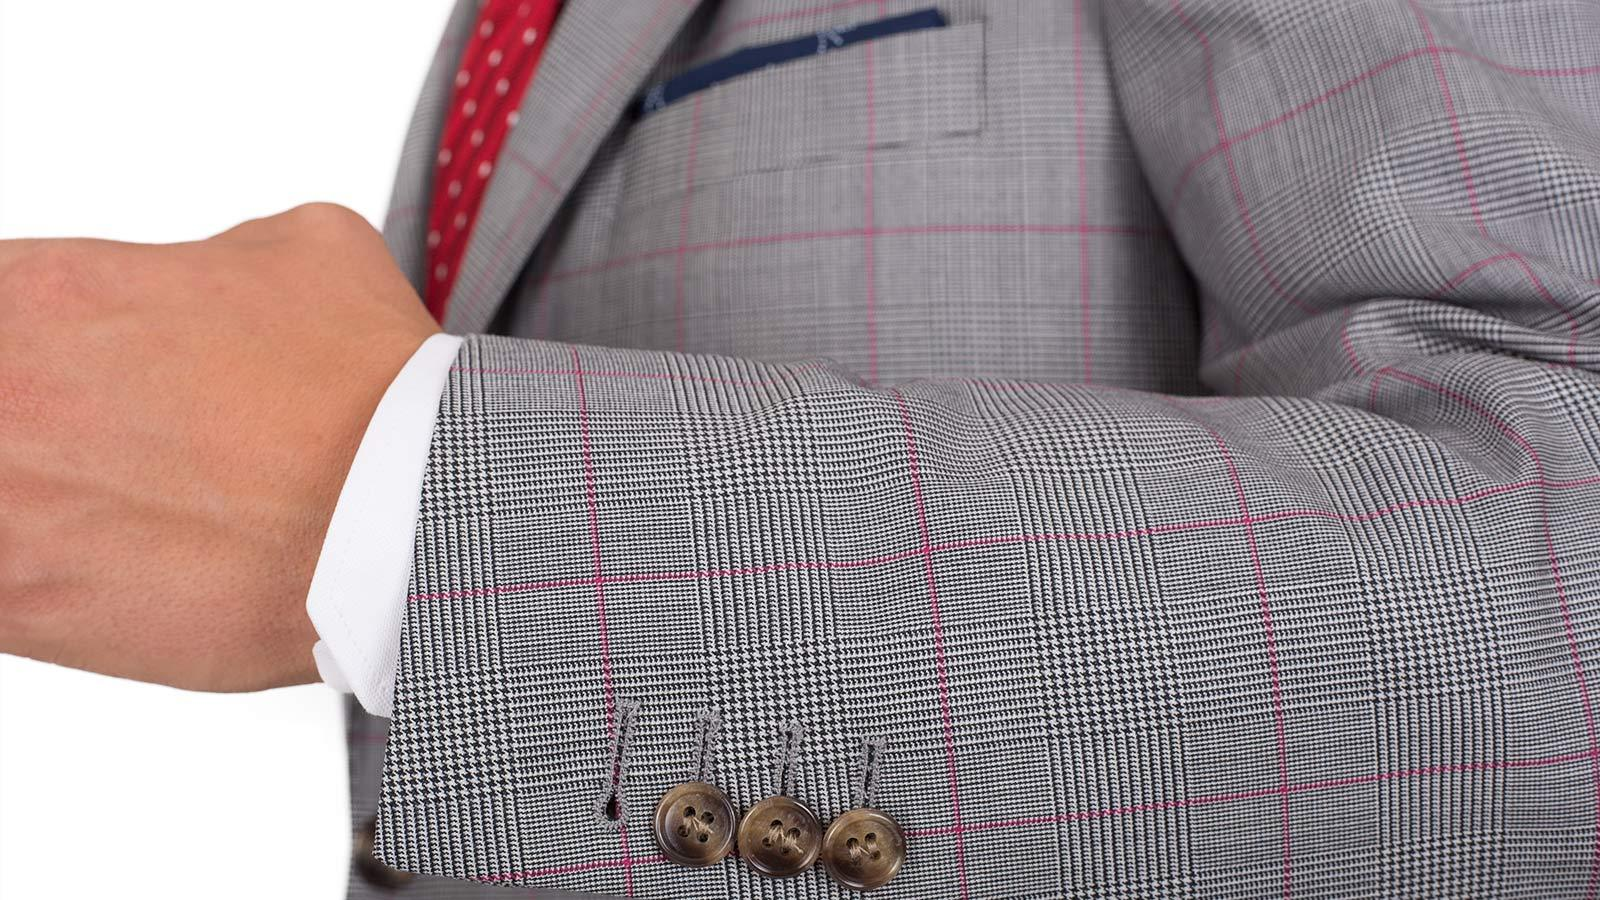 Vendetta Premium Grey & Red Plaid Suit - slider image 1